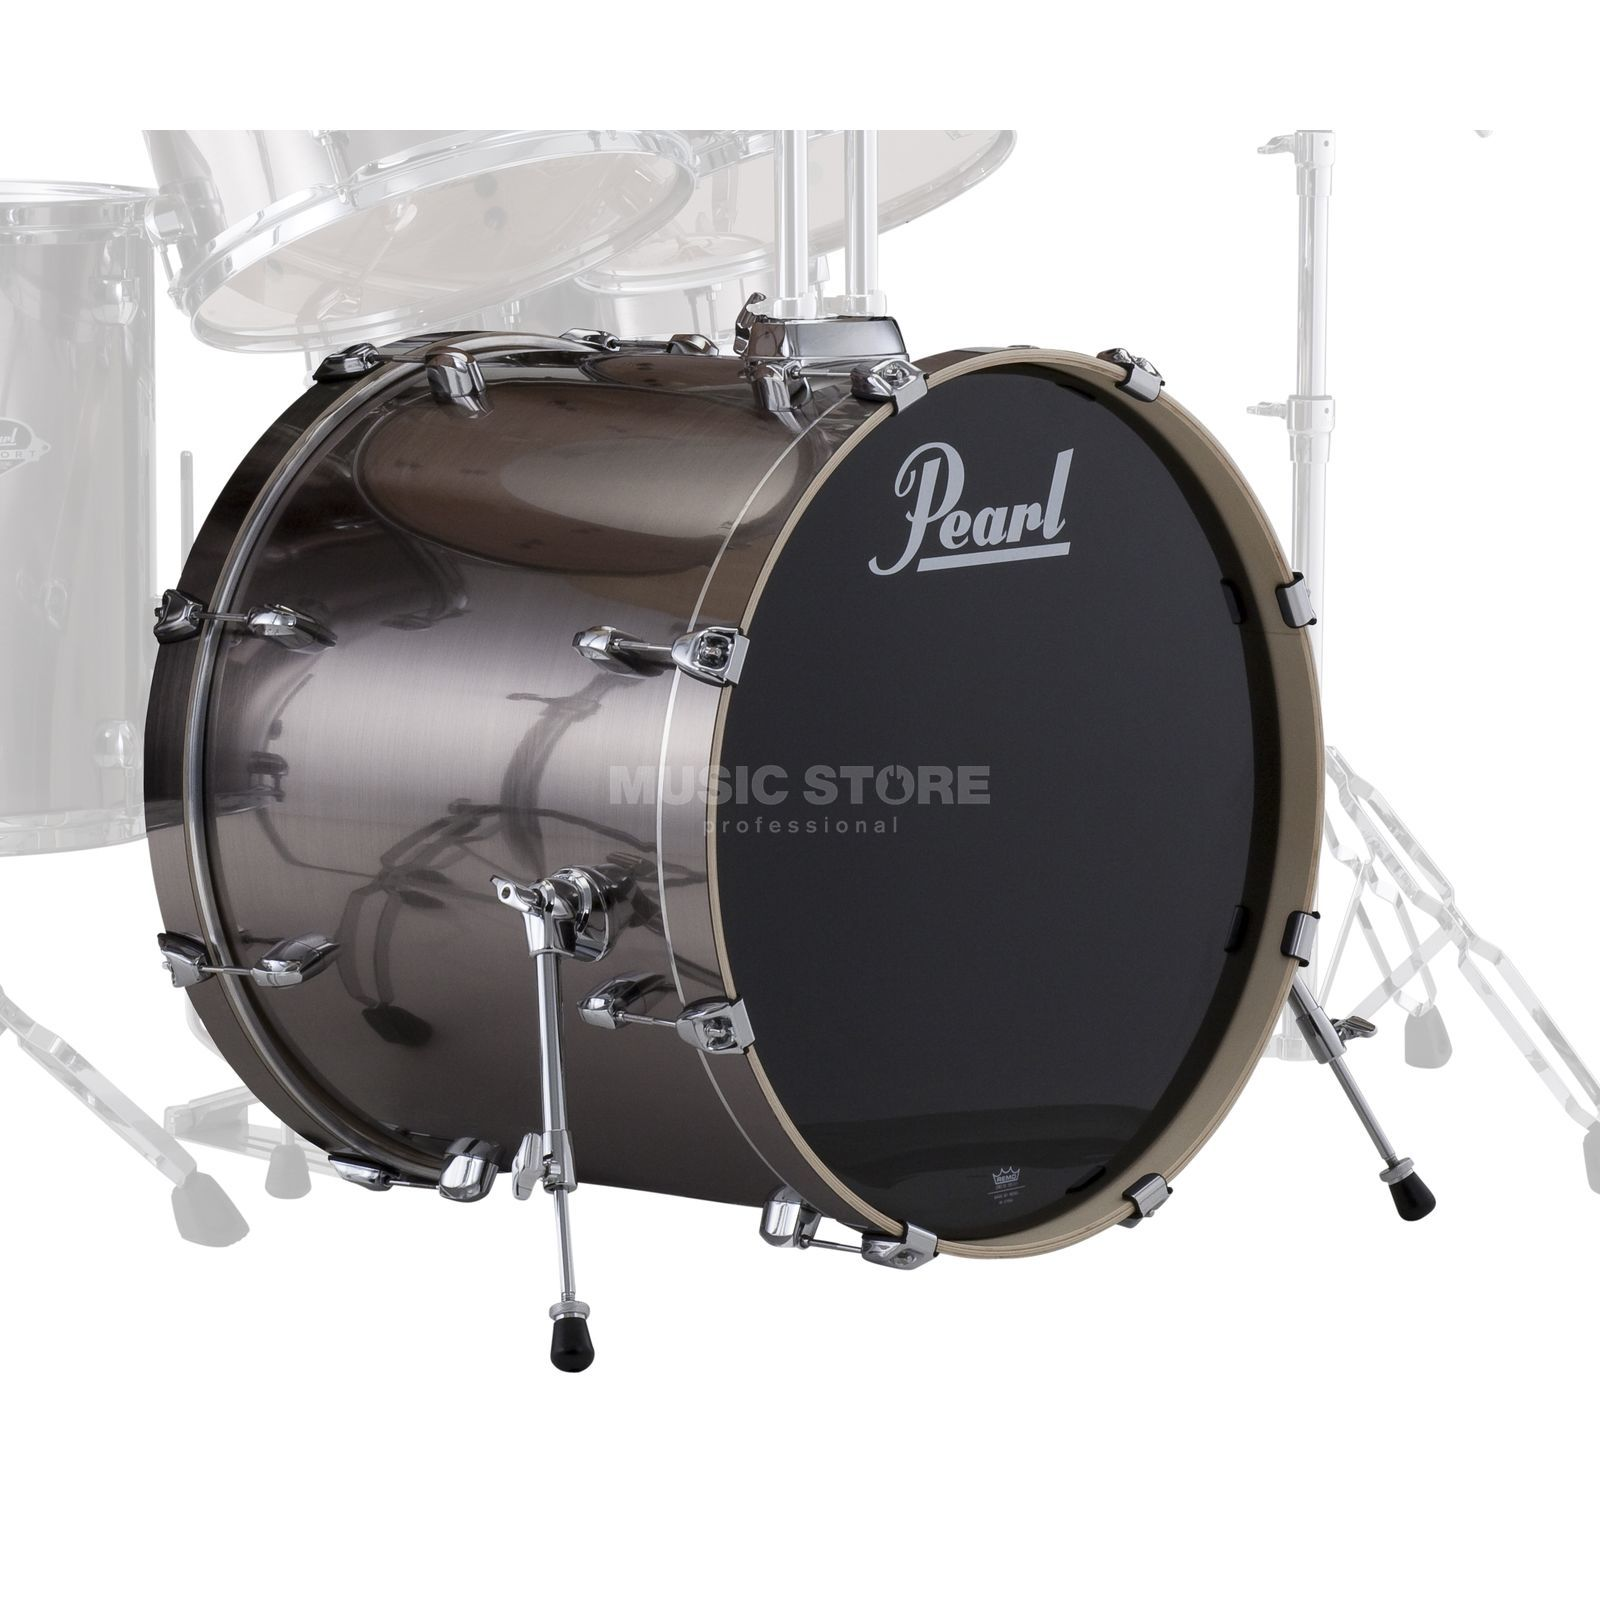 "Pearl Export EXX BassDrum 20""x18"", Smokey Chrome #21 Product Image"